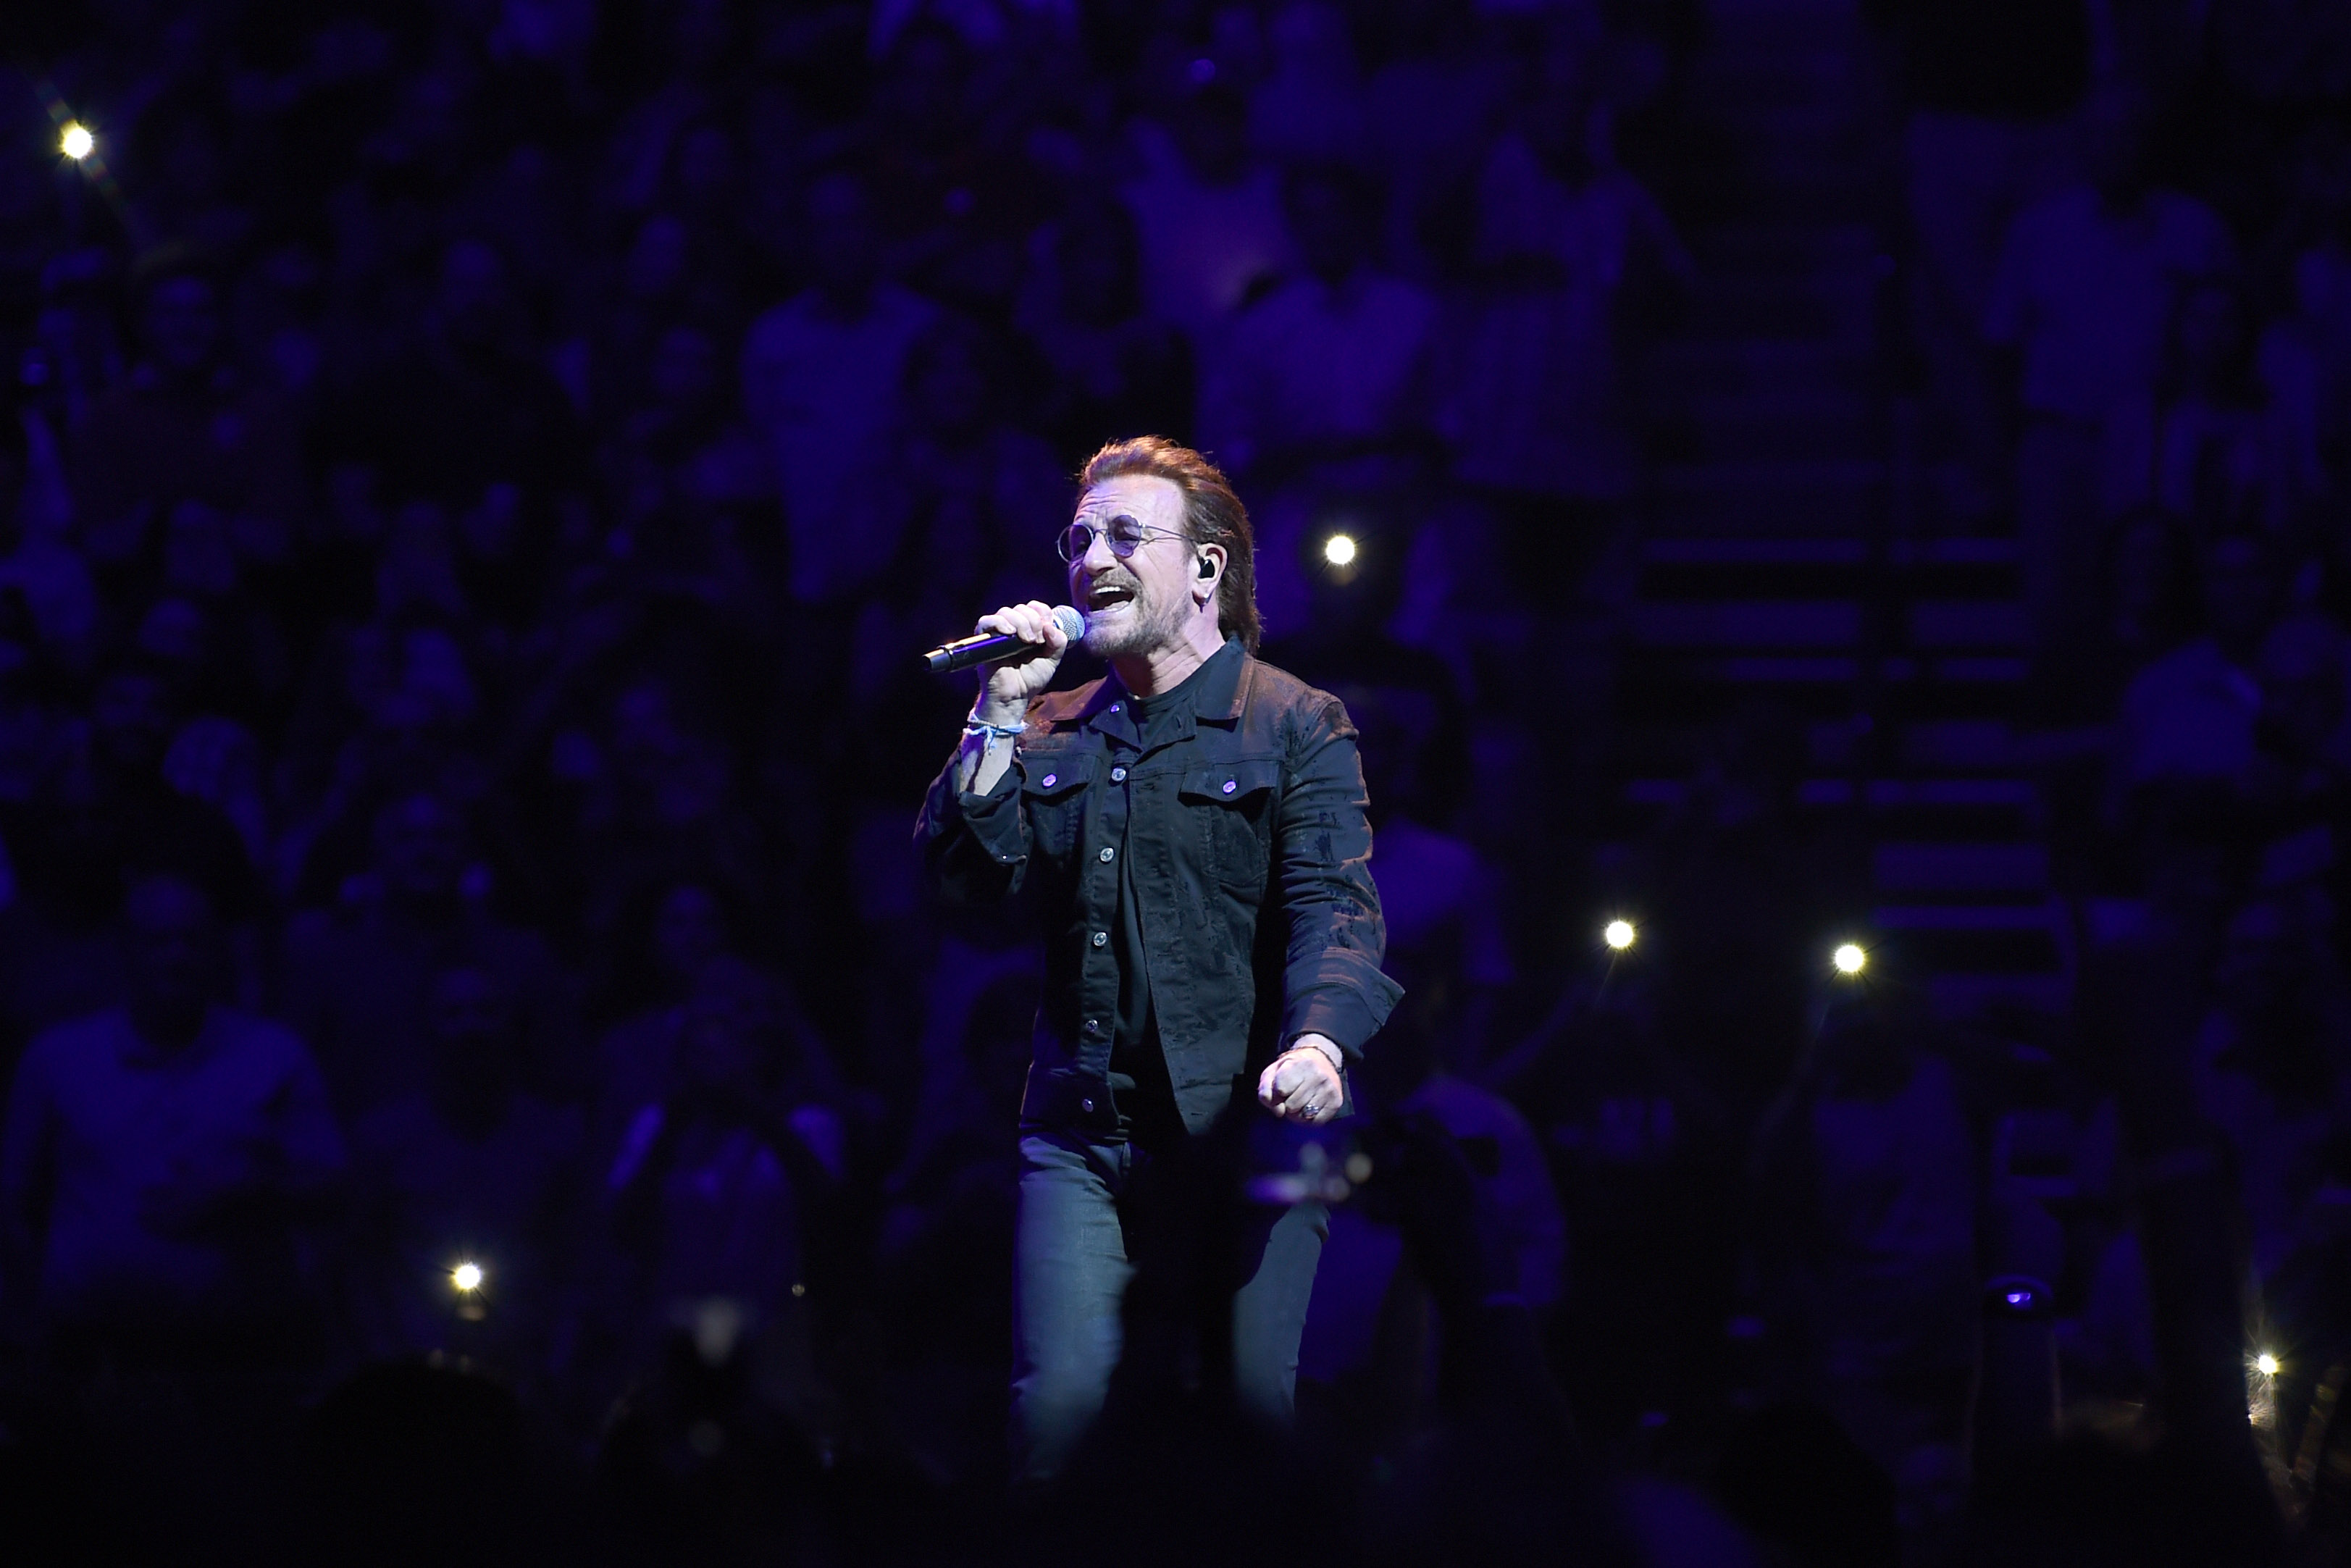 Bono of the rock band U2 performs at Bridgestone Arena on May 26, 2018 in Nashville, Tennessee.  (Photo by Jason Kempin/Getty Images)